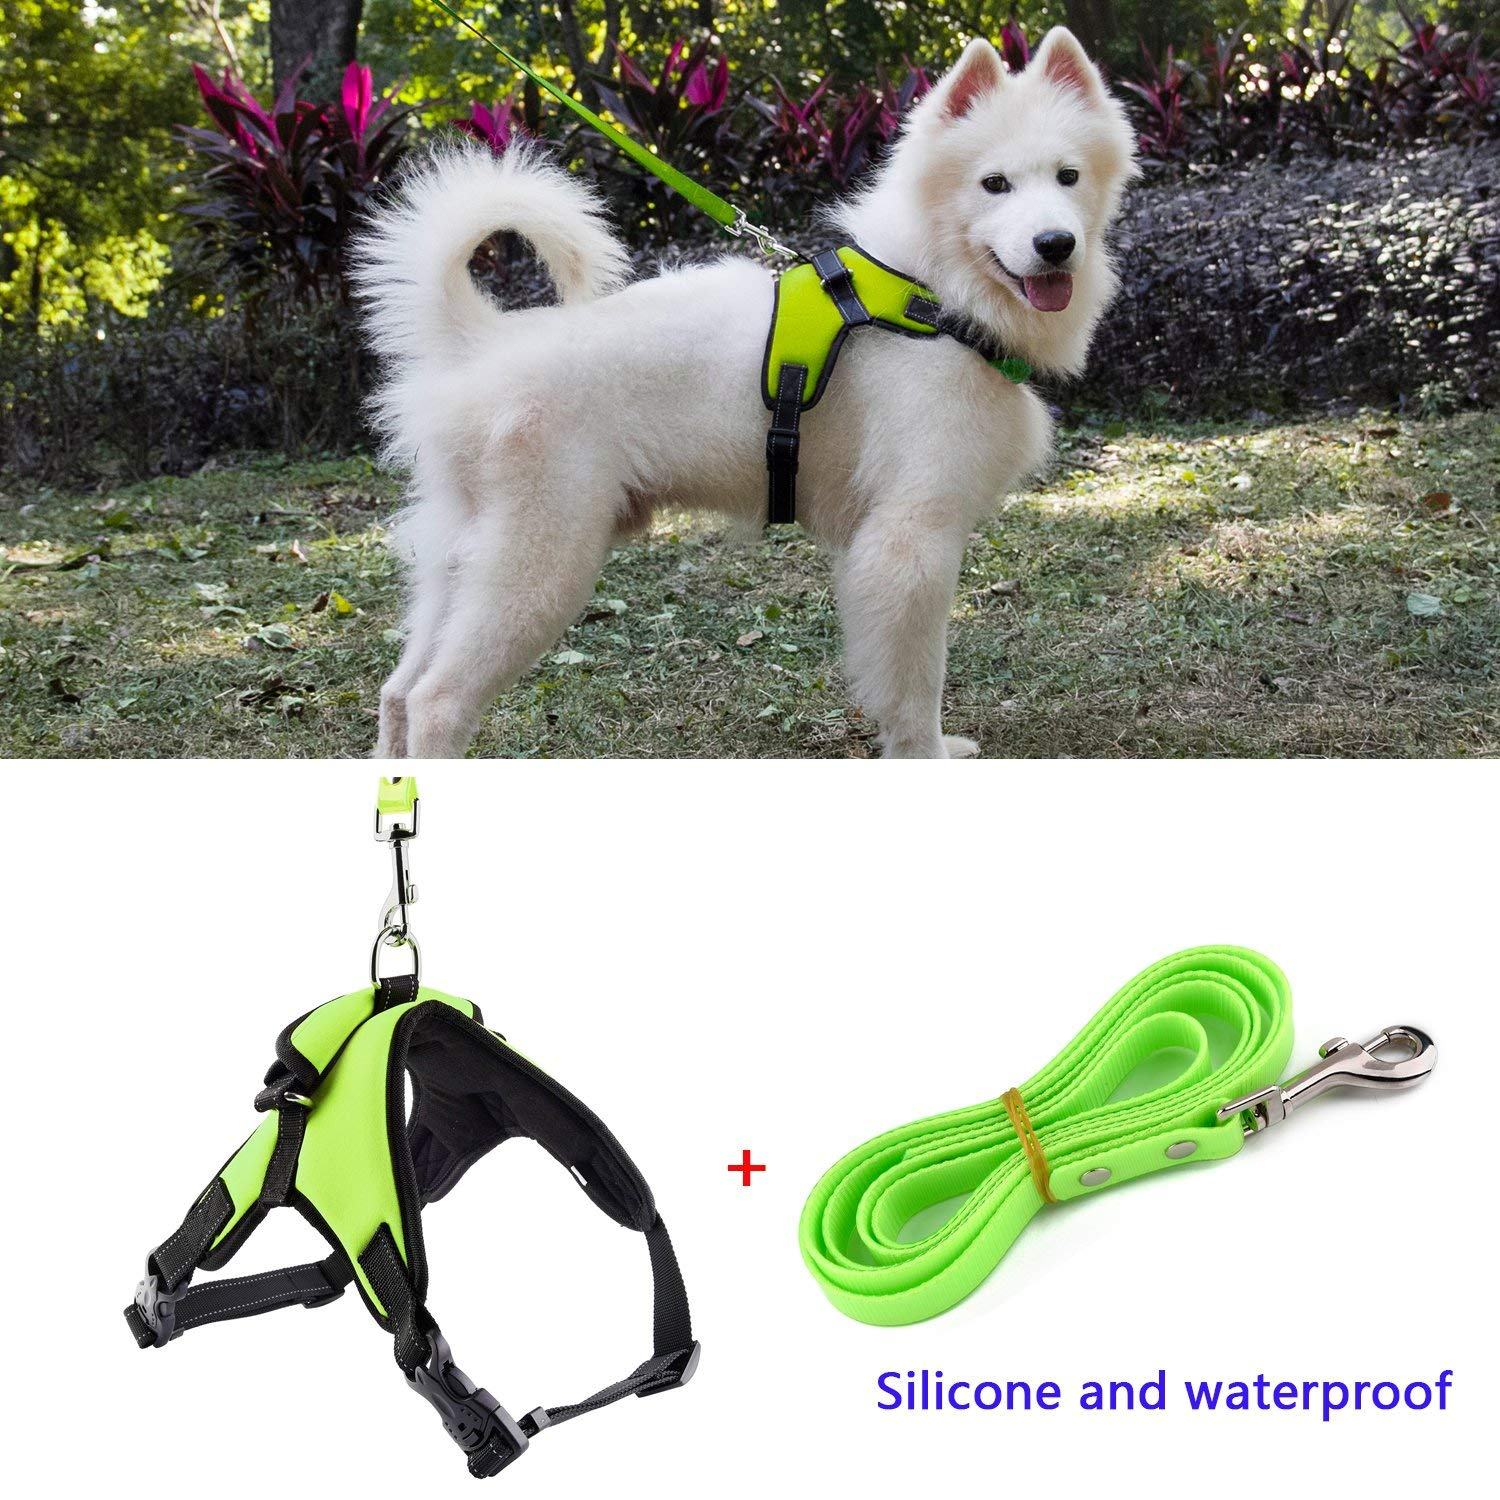 kiwitatá No Pull Dog Harness Waterproof Silicone Dog Leash,Soft Adjustable Diving Material Padded Pet Vest Harness Handle Small Medium Large Dogs